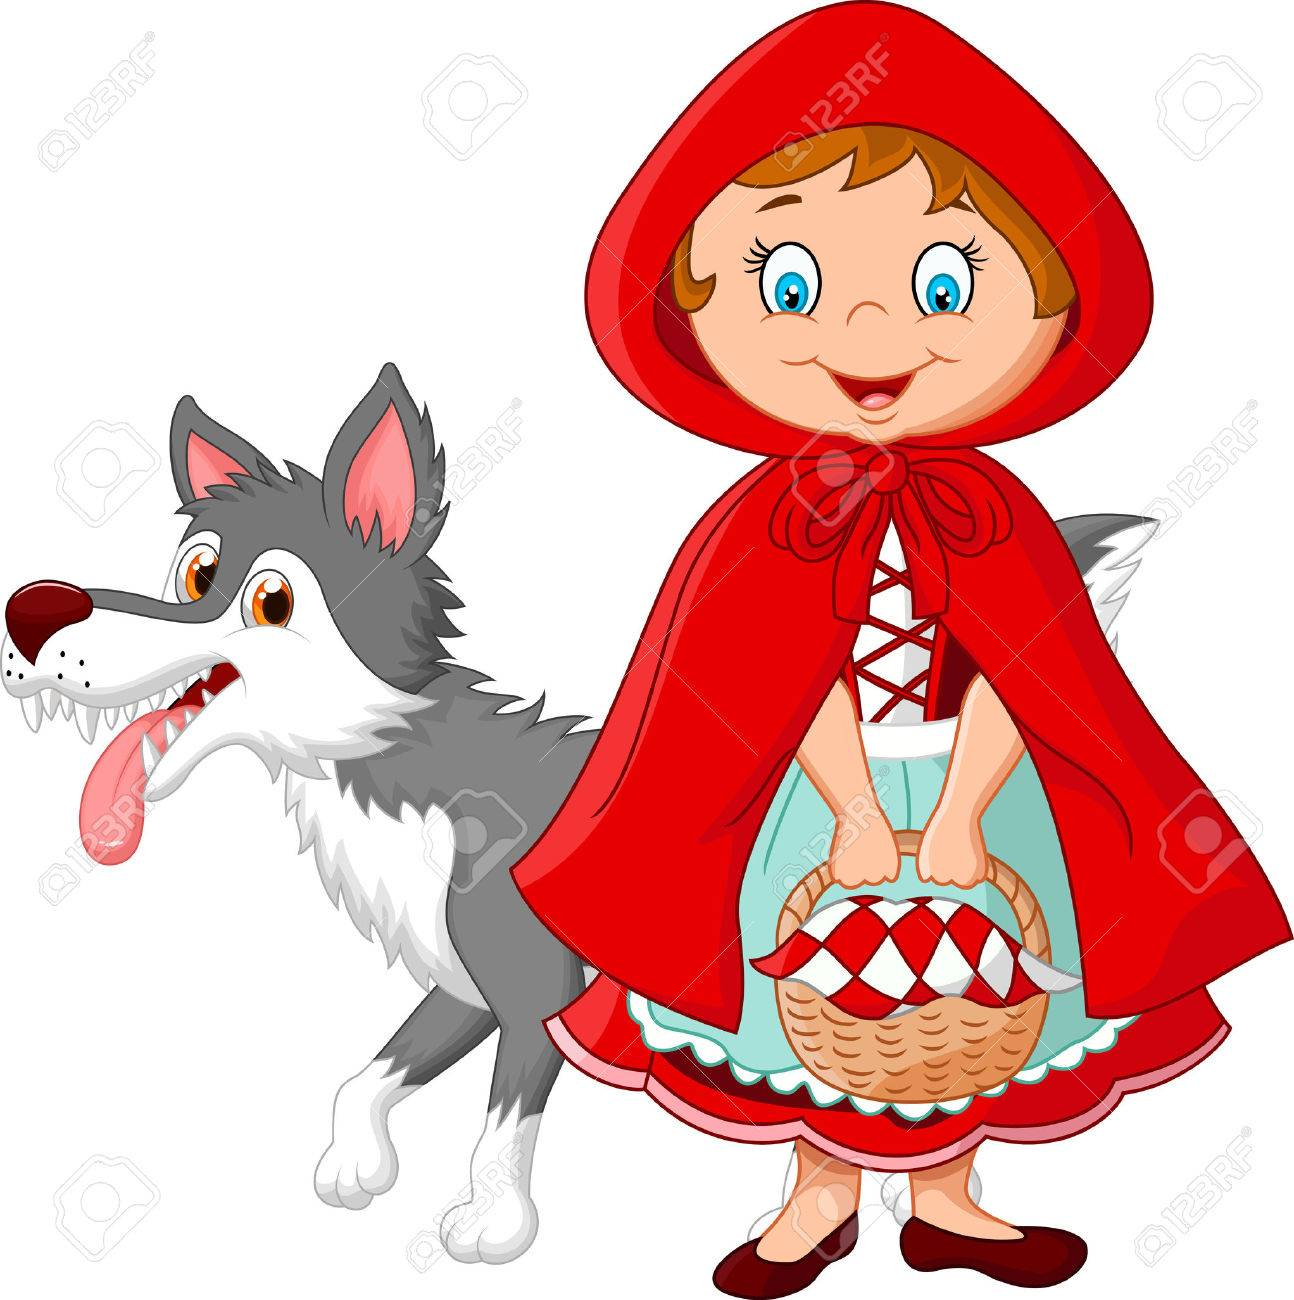 Red Riding Hood Clipart Free Download Clip Art.